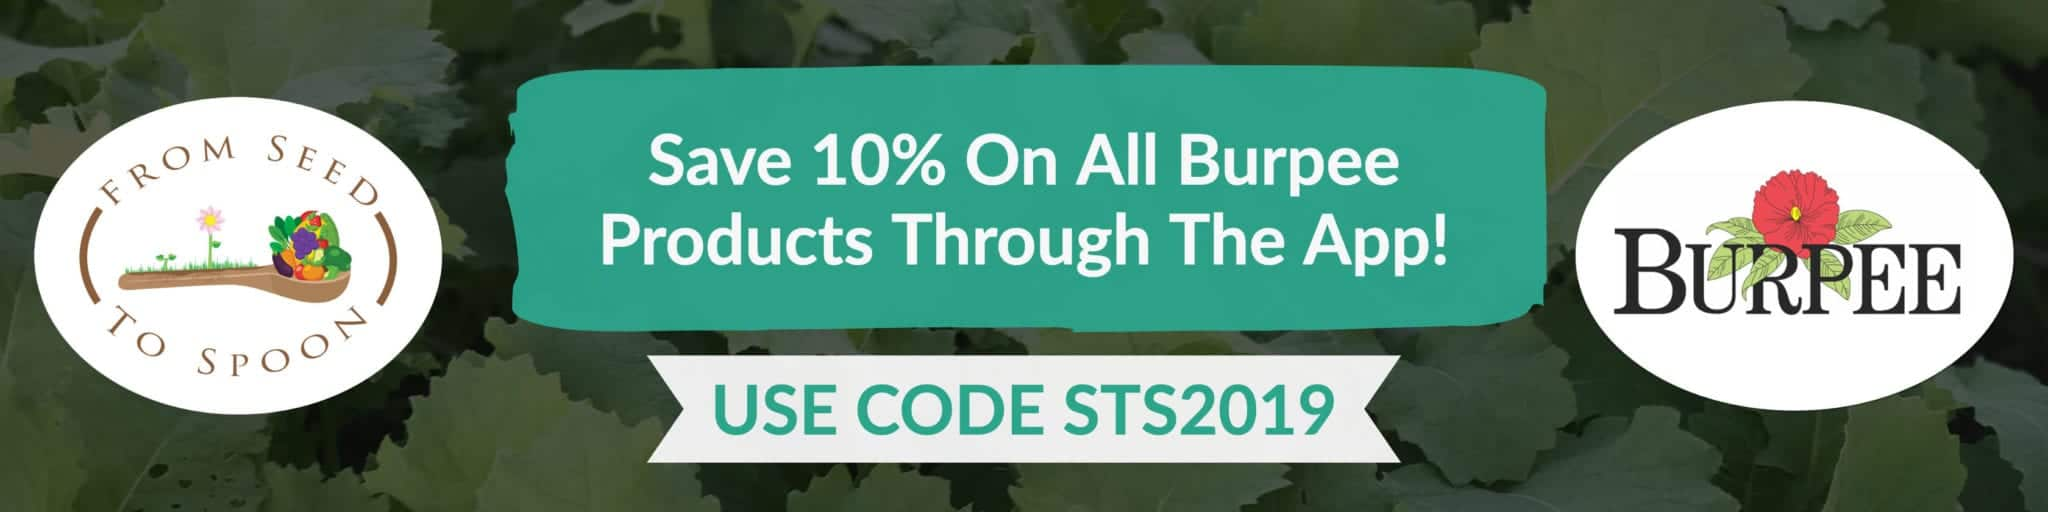 Save 10% on All Burpee Products with code STS2019